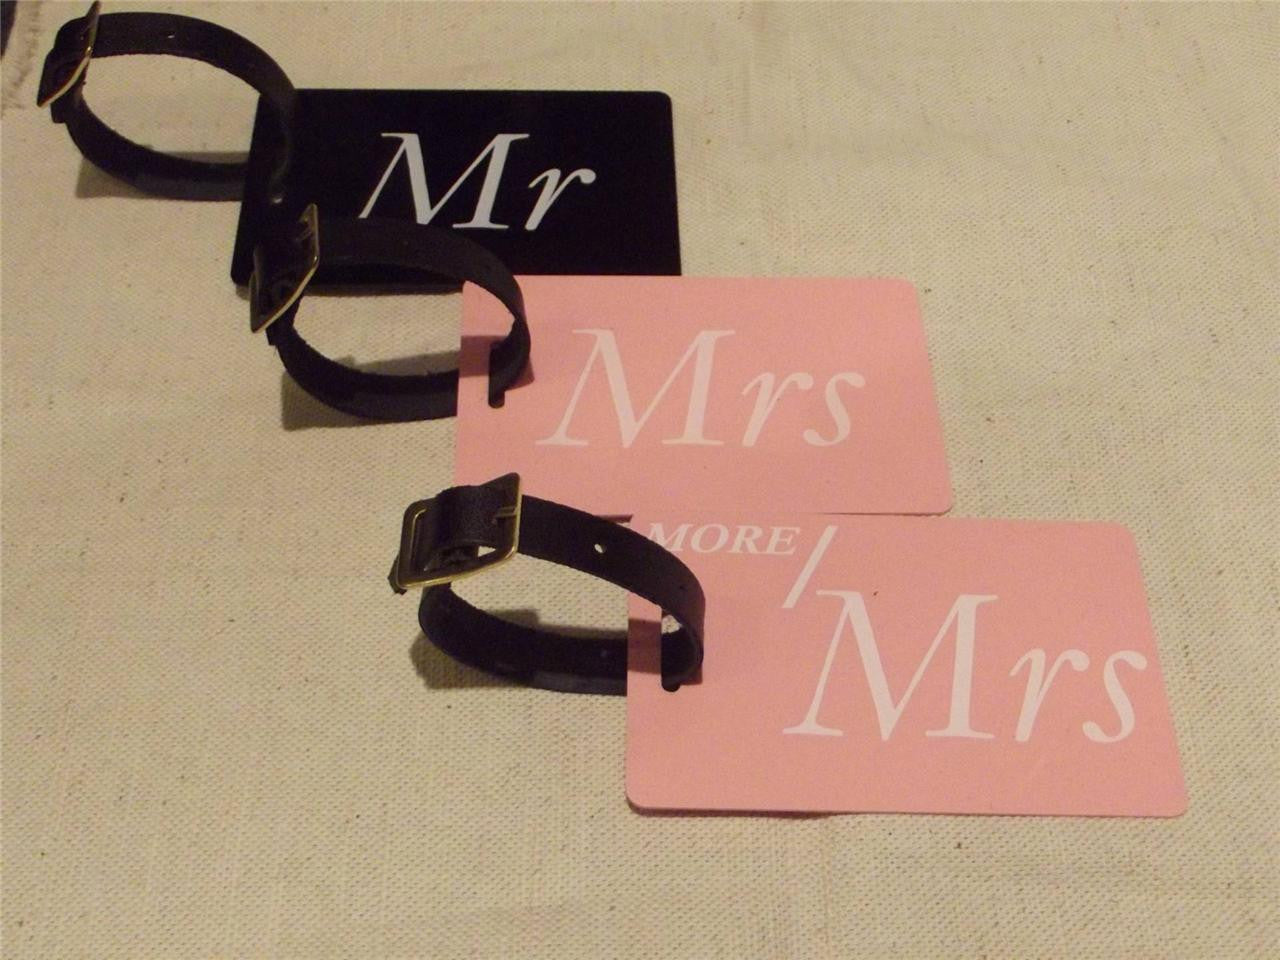 Novelty CREW LUGGAGE Tagg MR & MRS BLACK,PINK & Groom Bride  x3 -  Inflightgoods   - 1